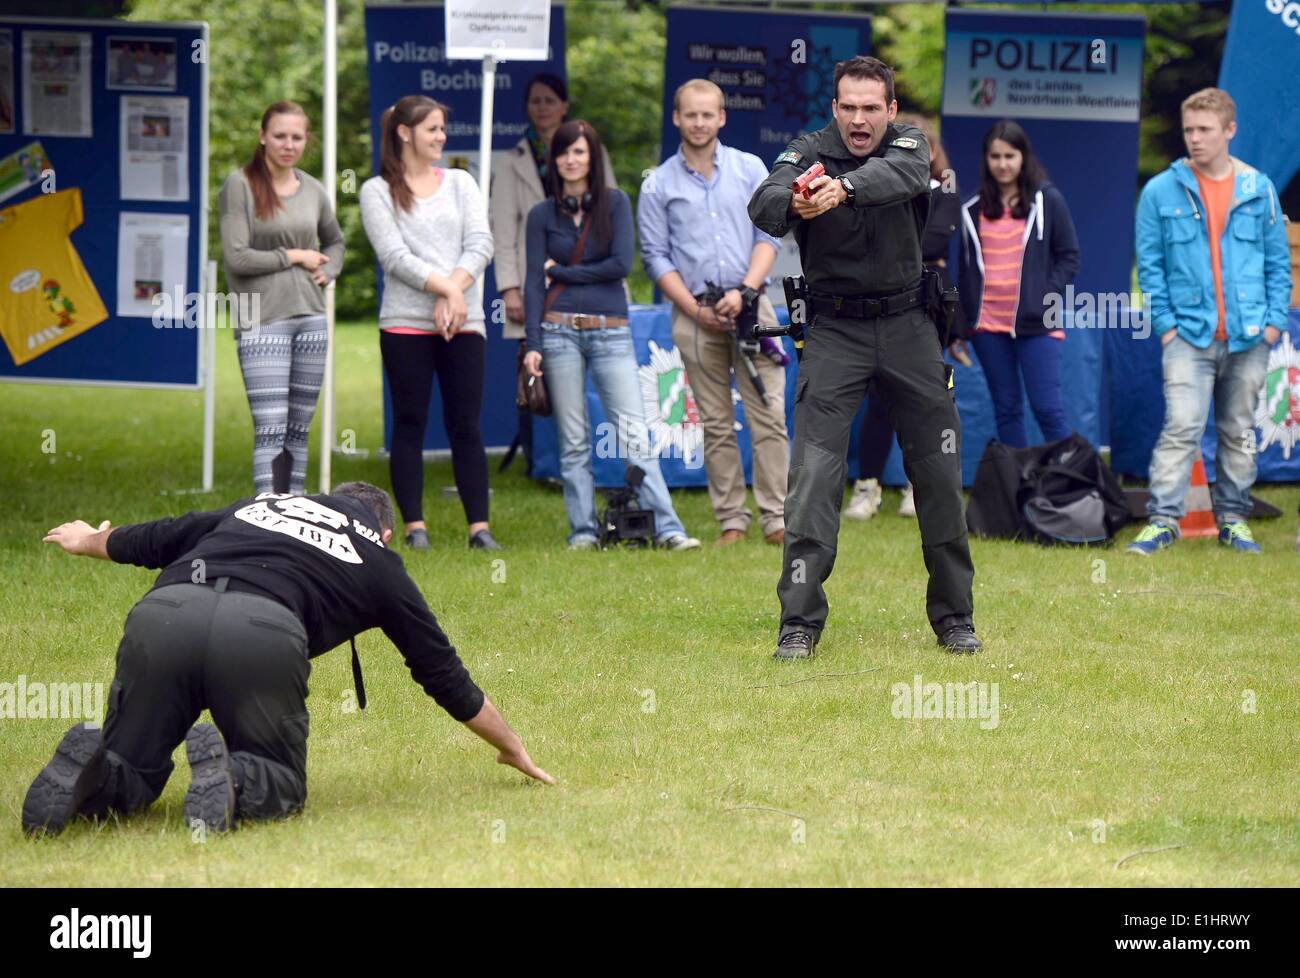 Bochum, Germany. 2nd June, 2014. Visitors look an as two police officers (front) stage an arrest during a recruitment campaign of North Rhine-Westphalia's police force in Bochum, Germany, 2 June 2014. North Rhine-Westphalia's police force is currently recruiting 1500 new officers. Photo: Henning Kaiser/dpa/Alamy Live News - Stock Image